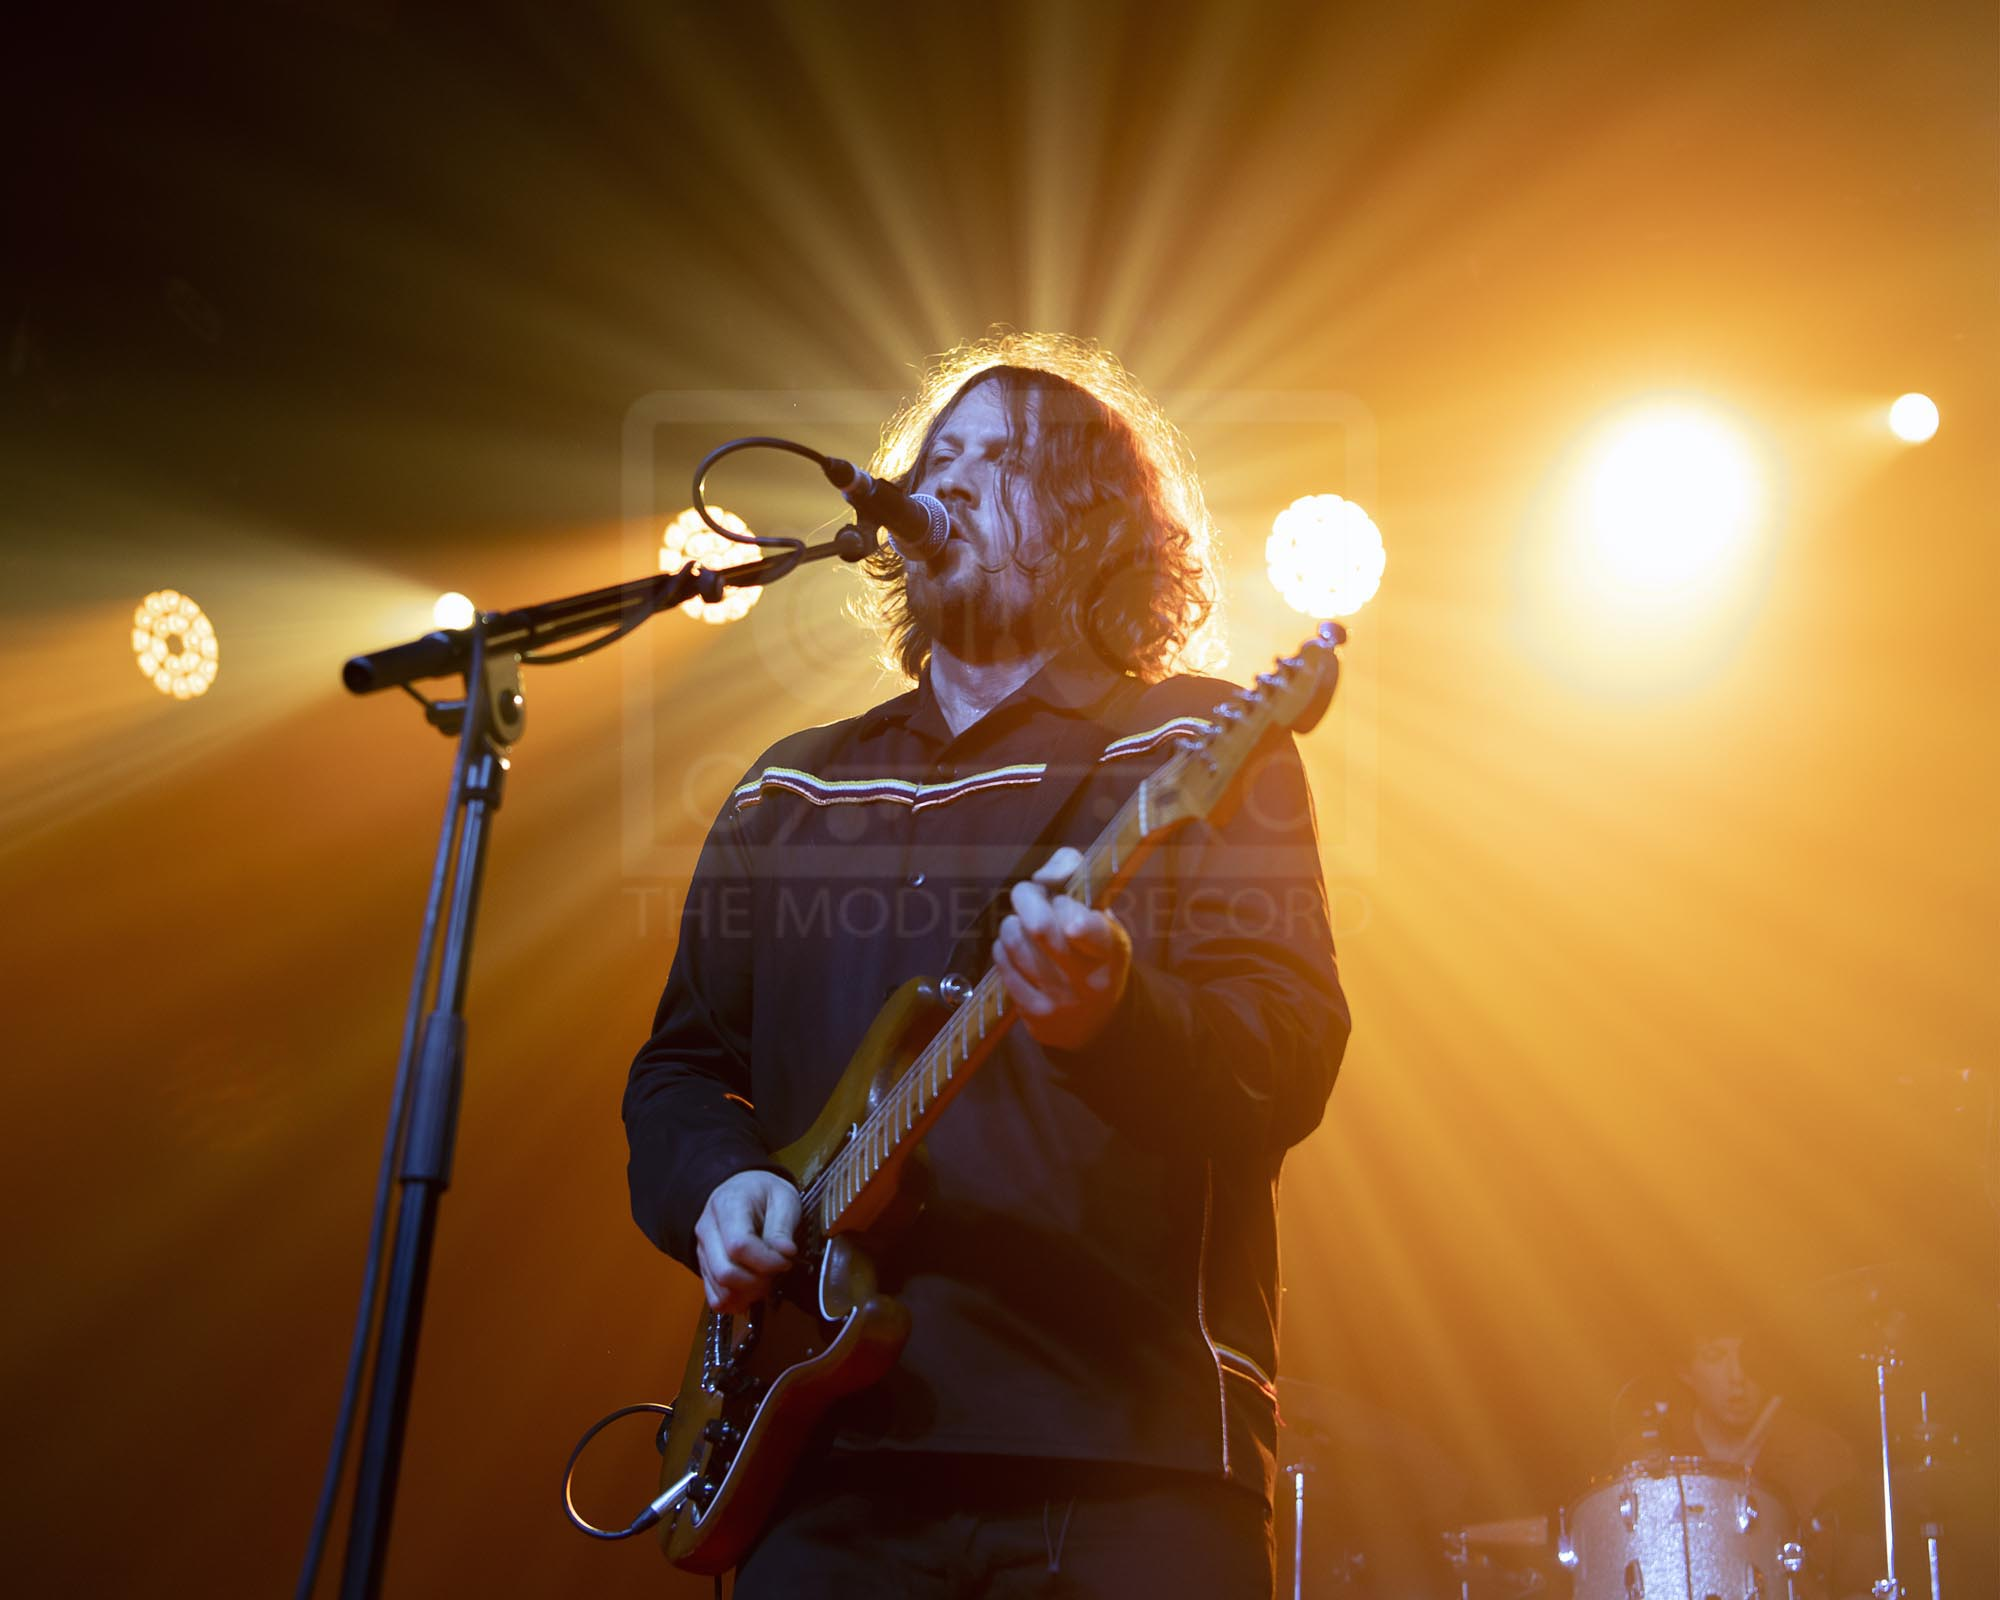 THE ZUTONS PERFORMING AT GLASGOW'S BARROWLAND BALLROOM - 28.03.2019  PICTURE BY: GAVIN ROSS PHOTOGRAPHY